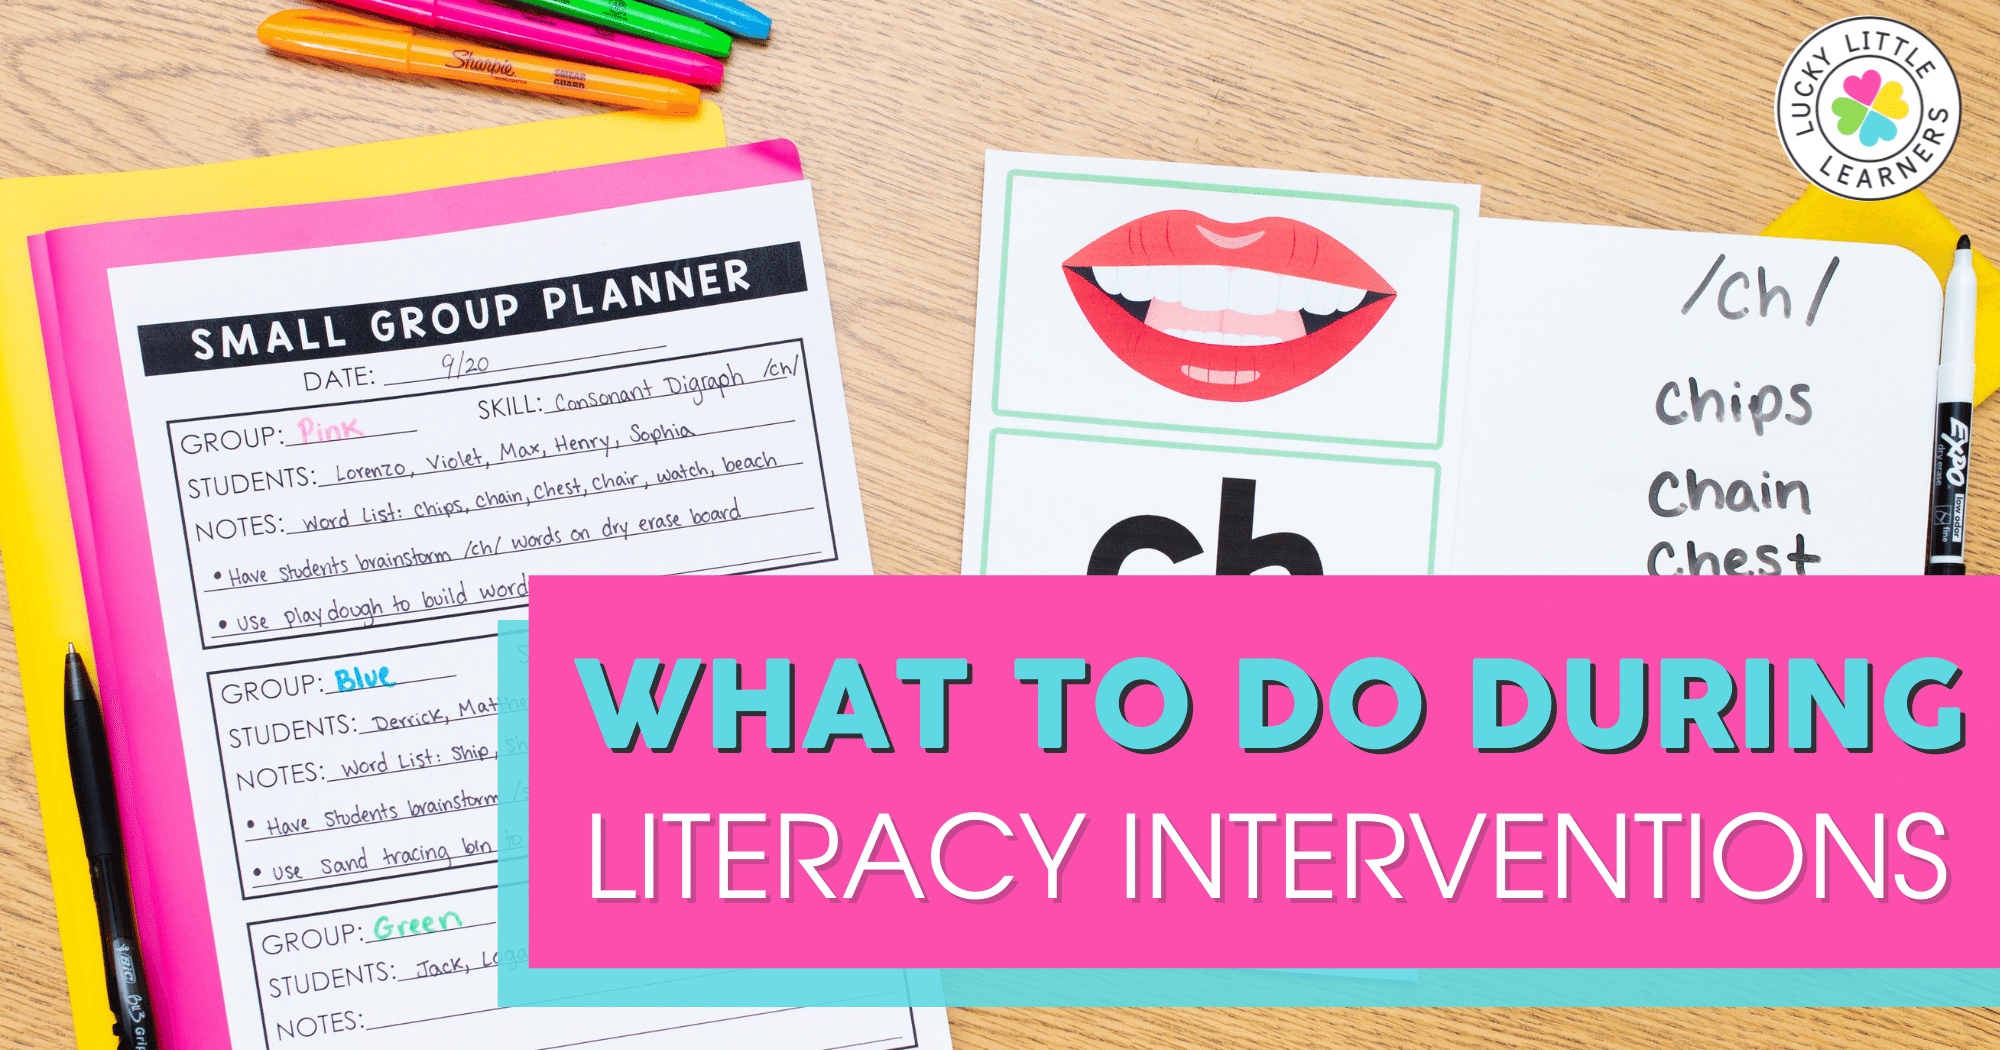 What to Do During Literacy Interventions